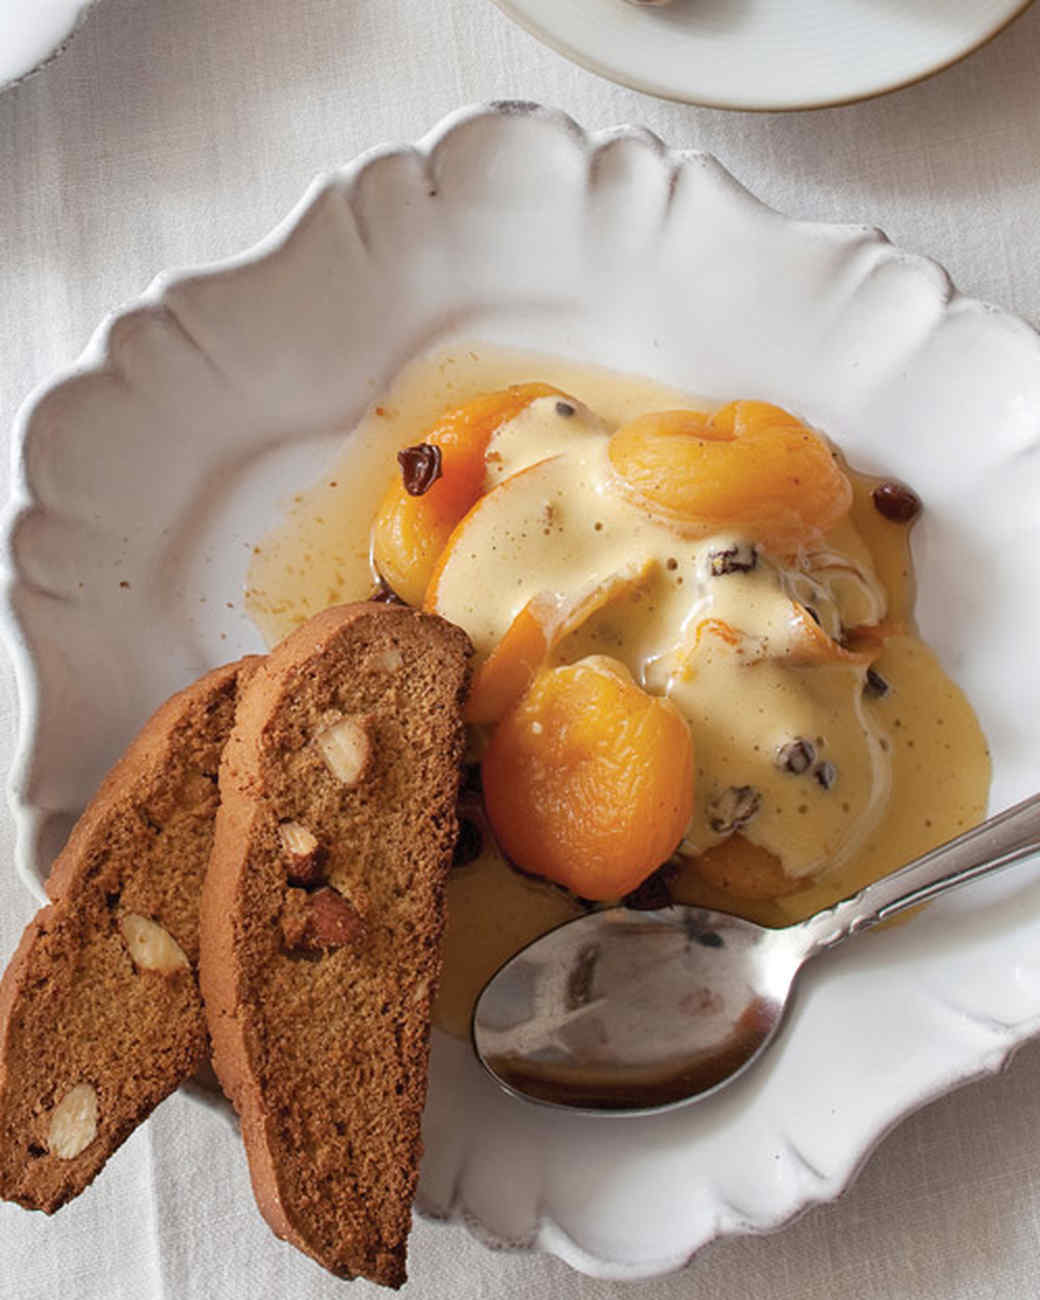 mld104913_1209_1209_poached_apricots.jpg